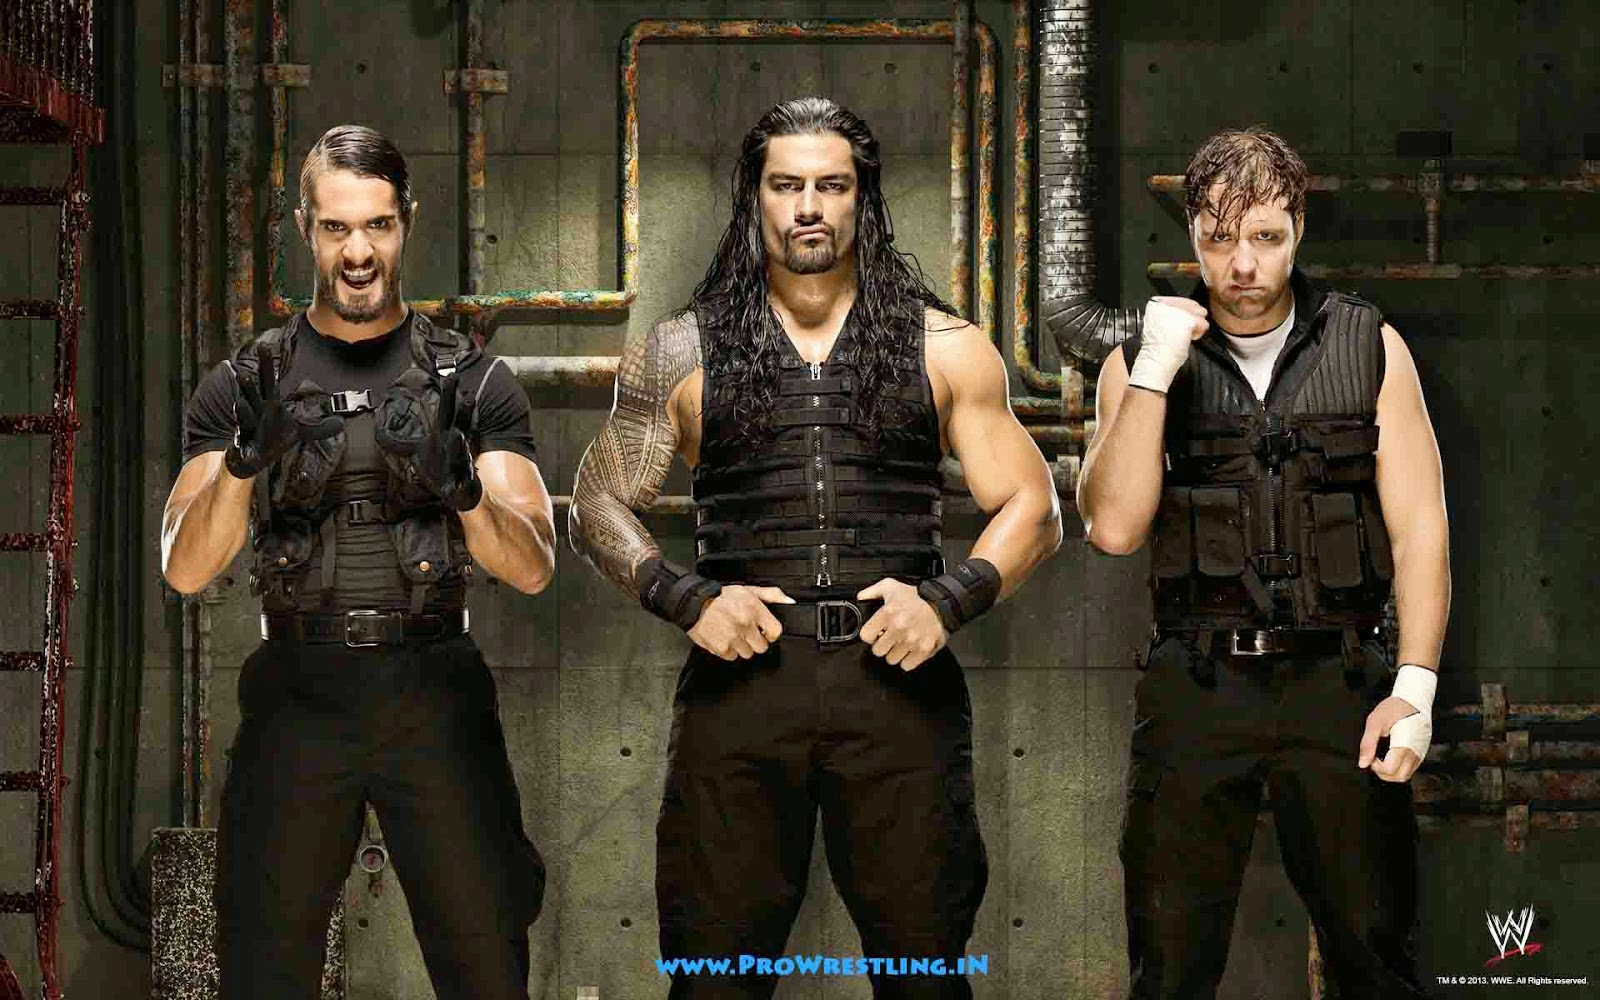 50+] WWE The Shield Wallpaper on WallpaperSafari